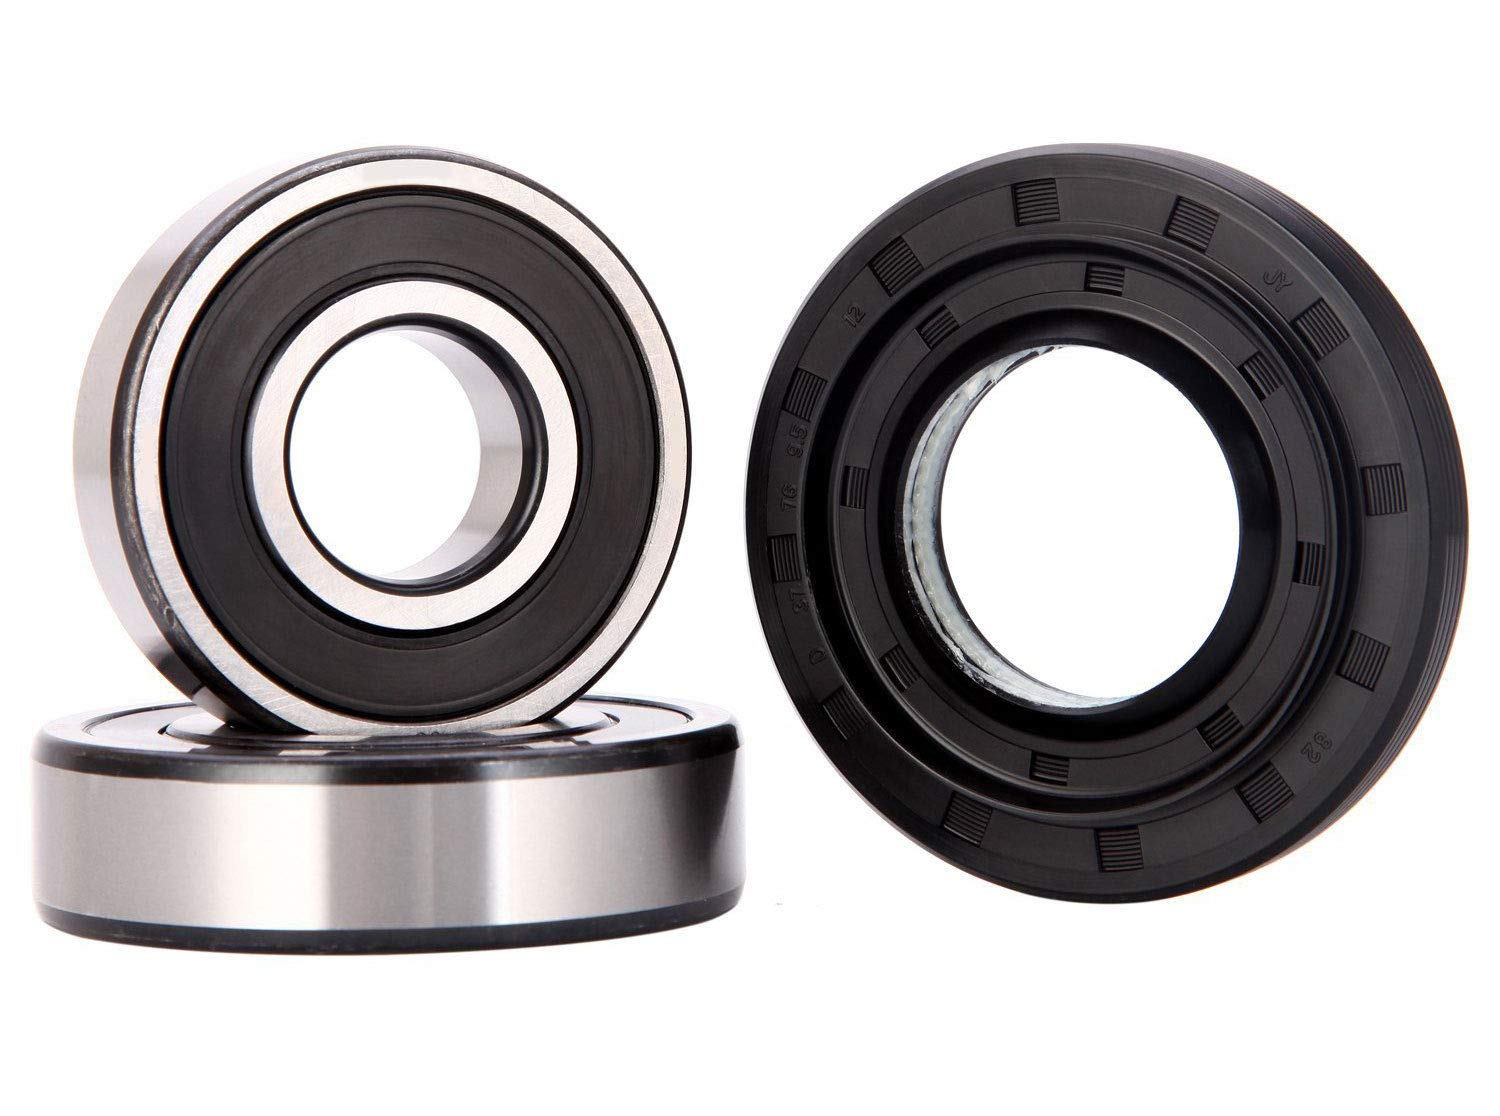 Washer Tub Bearing Seal Kit that works with LG WM2487HWM by Washer Parts